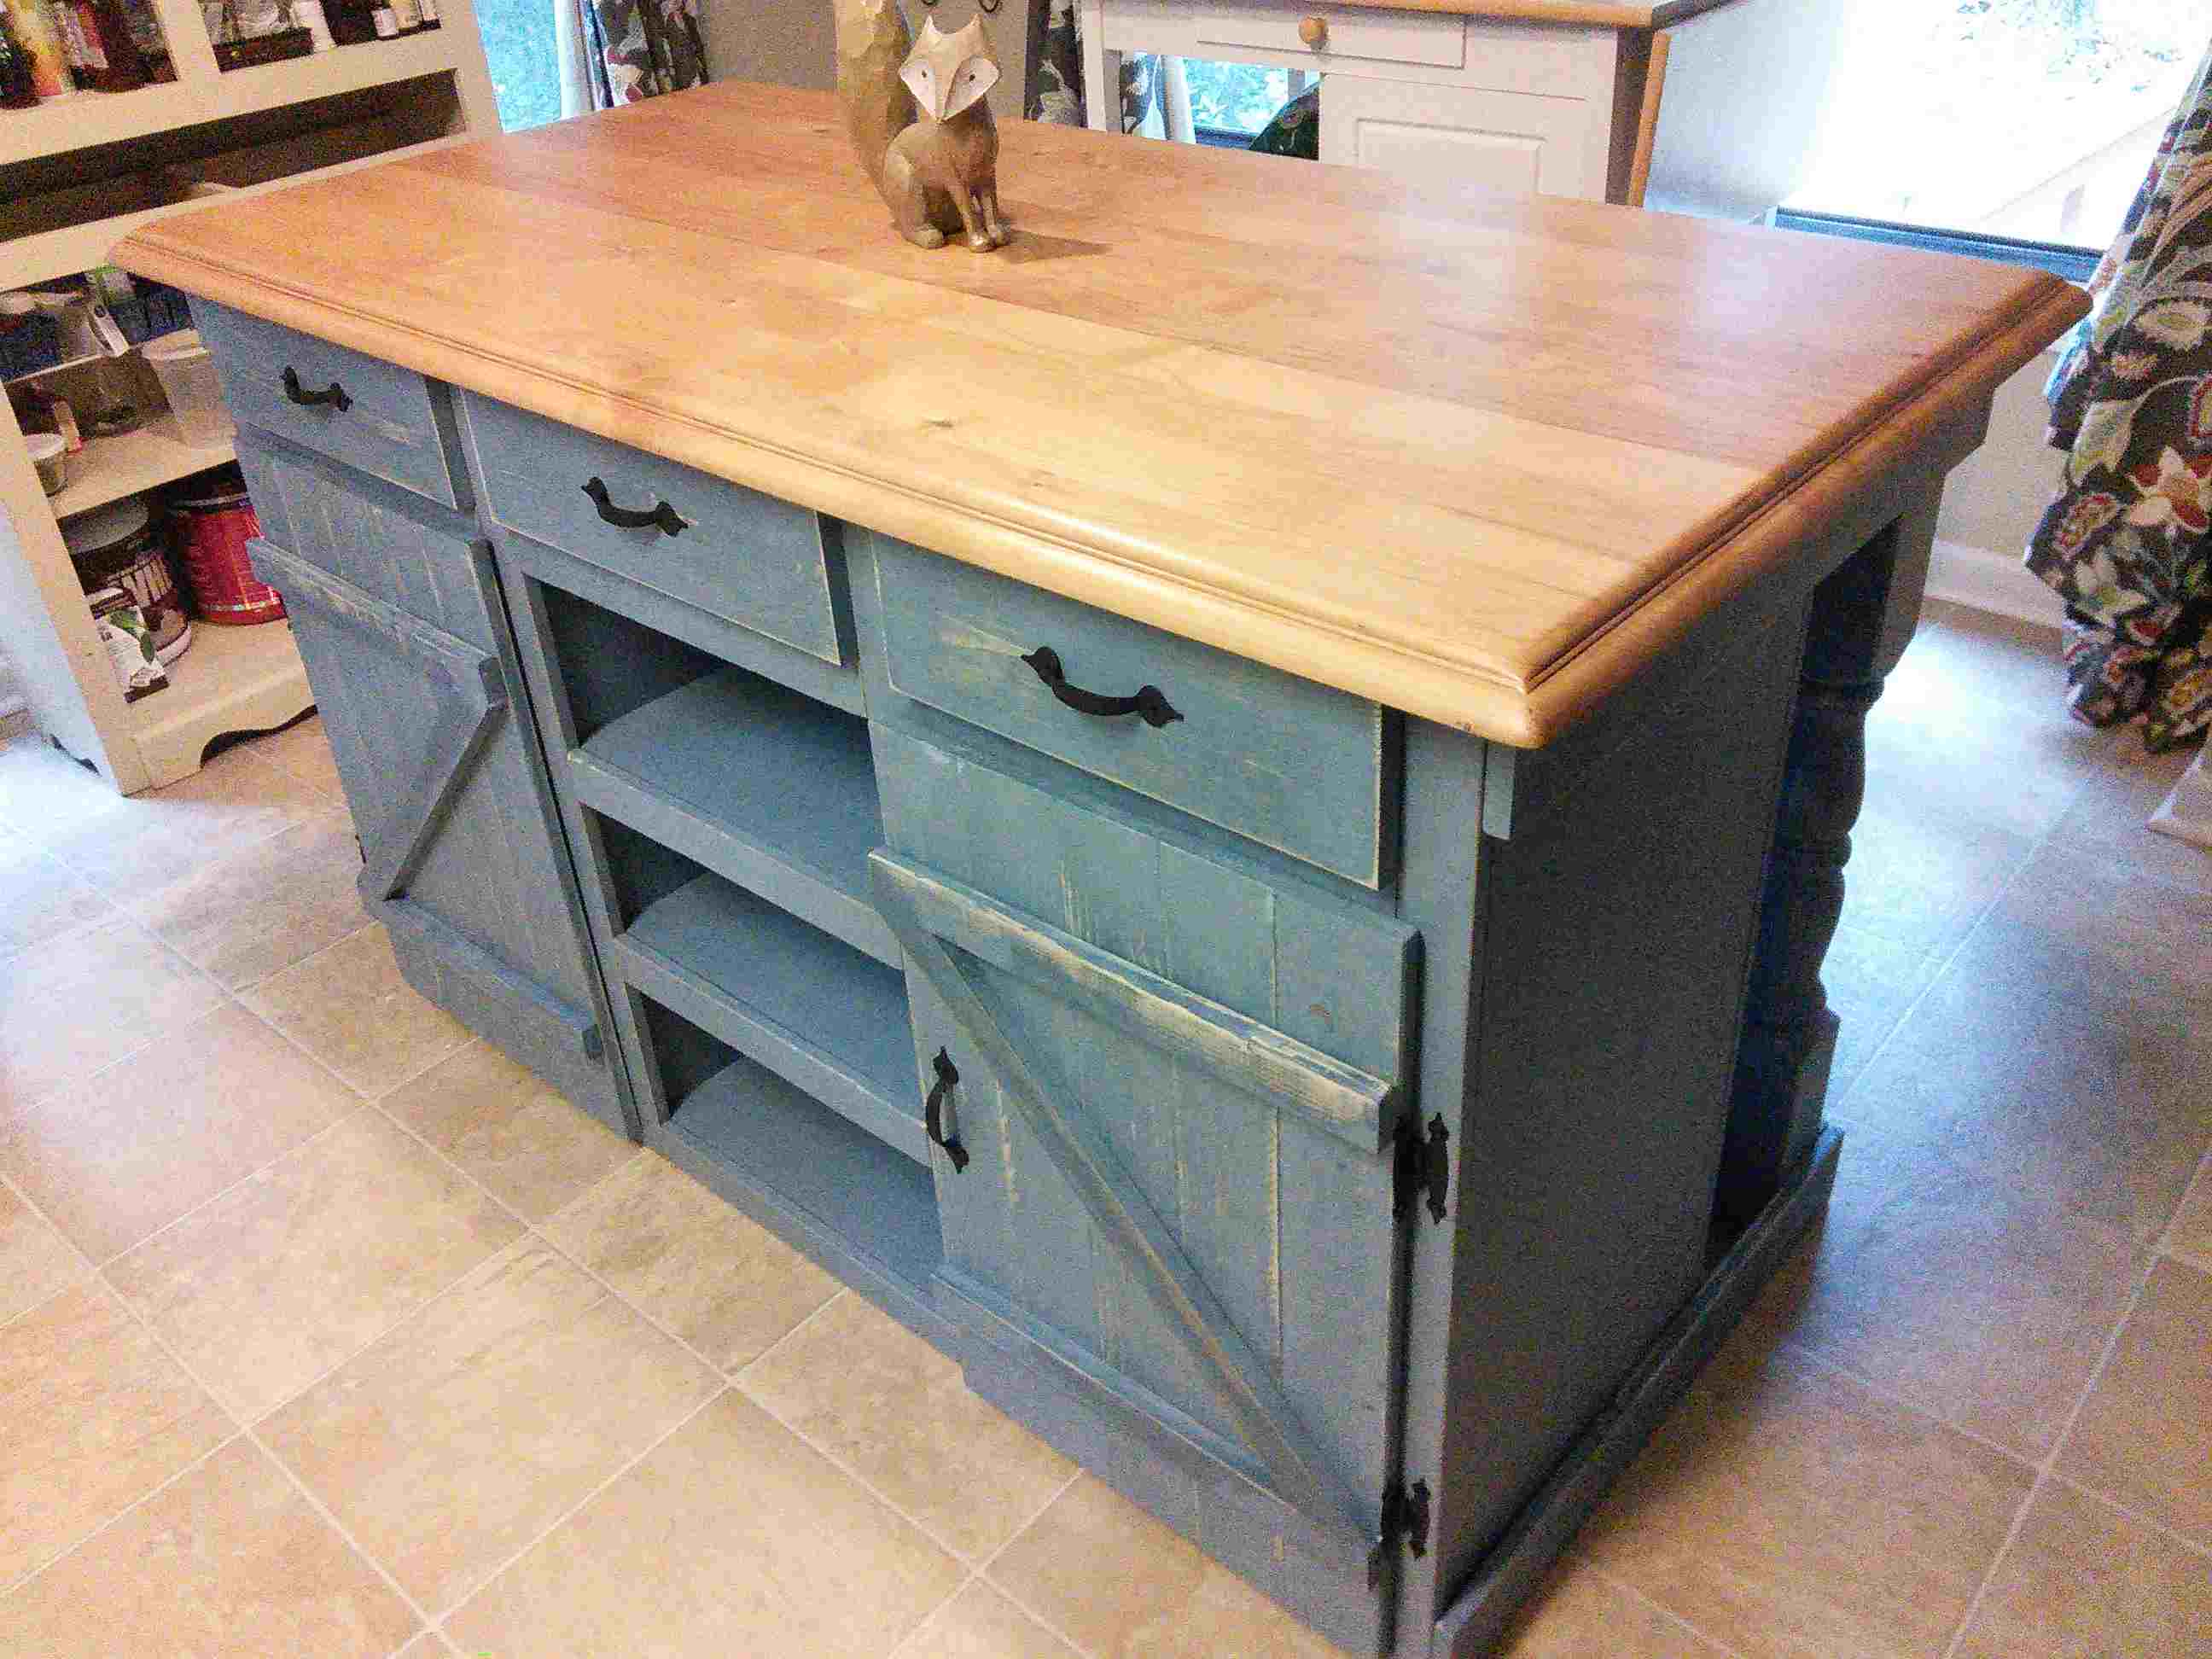 A Distressed Farmhouse Style Kitchen Island